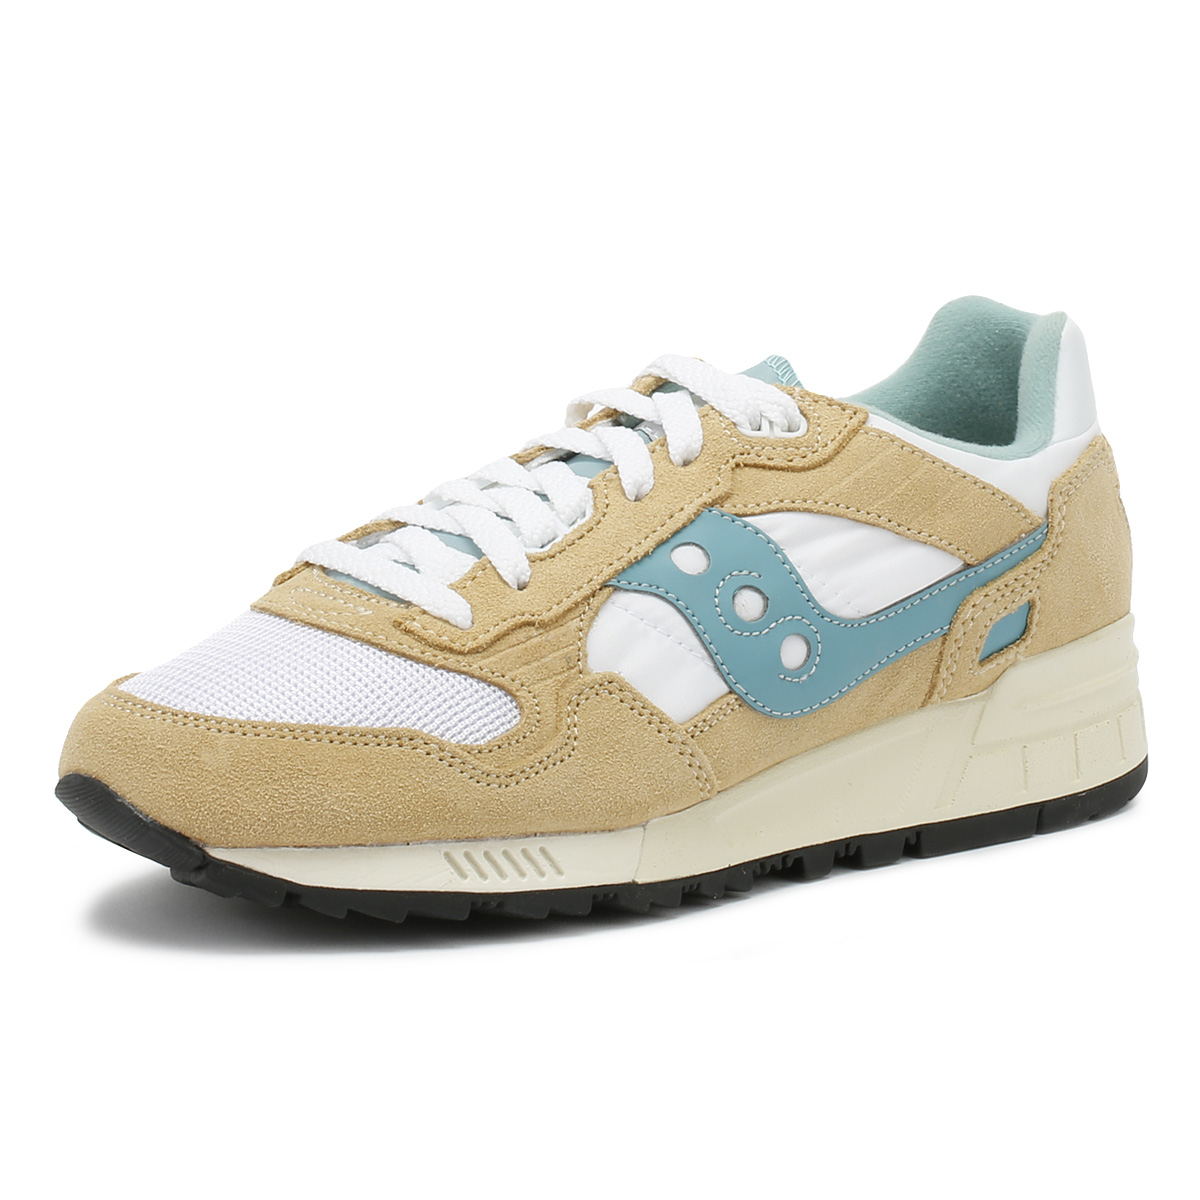 dec641e5542a Details about Saucony Womens Trainers Tan White   Blue Shadow 5000 Vintage  Sport Casual Shoes